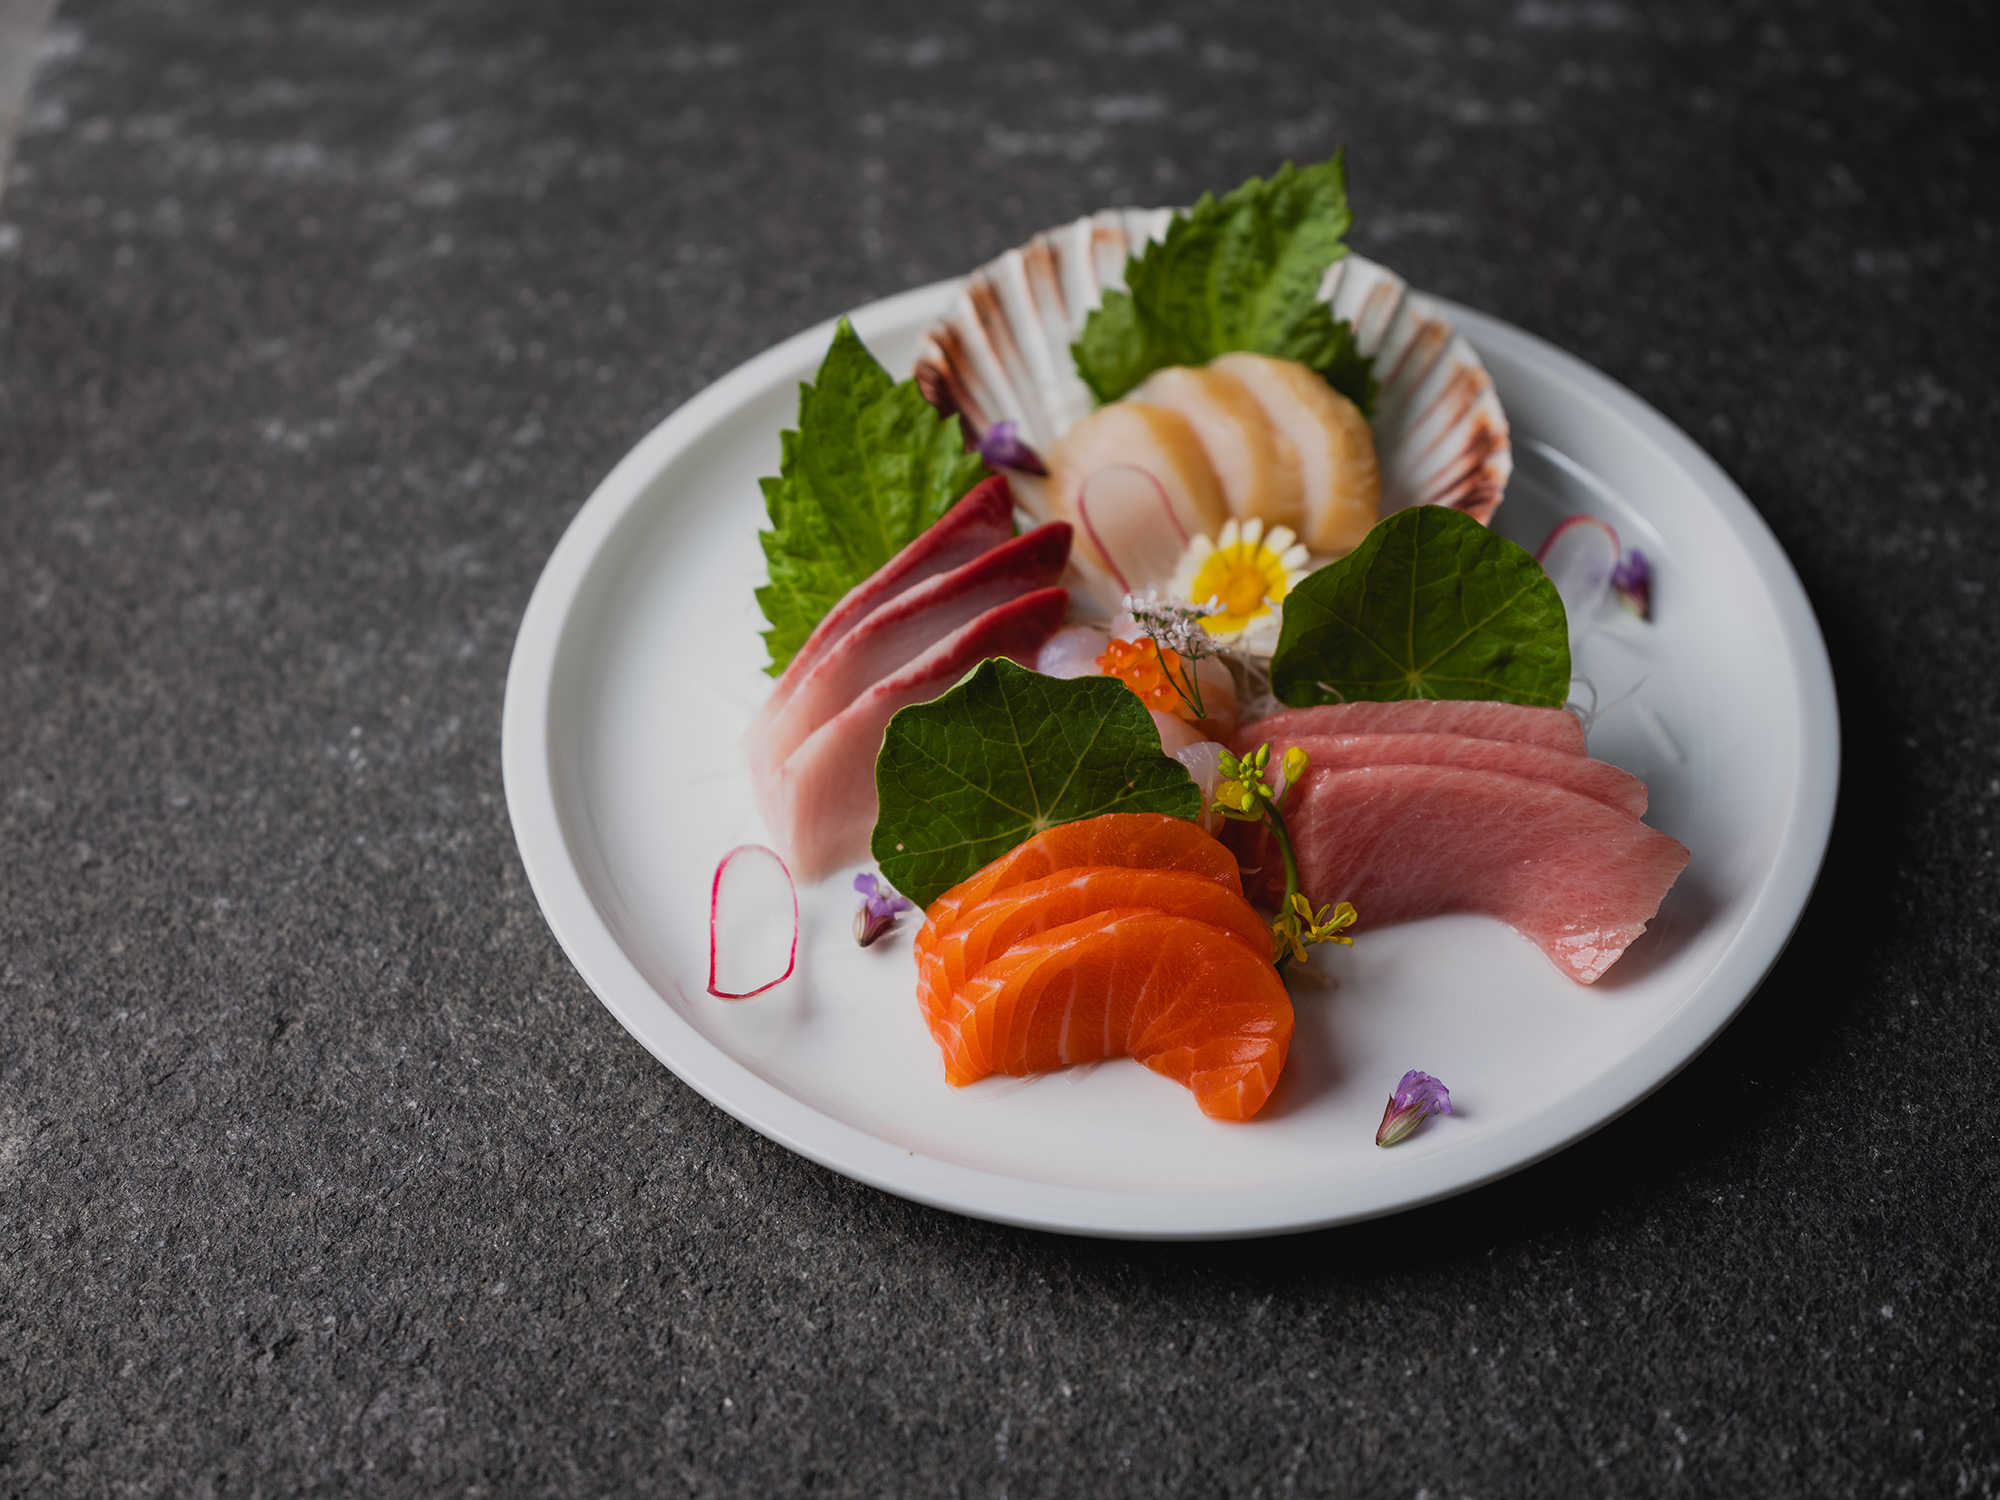 Sashimi is order of the day at Sachi